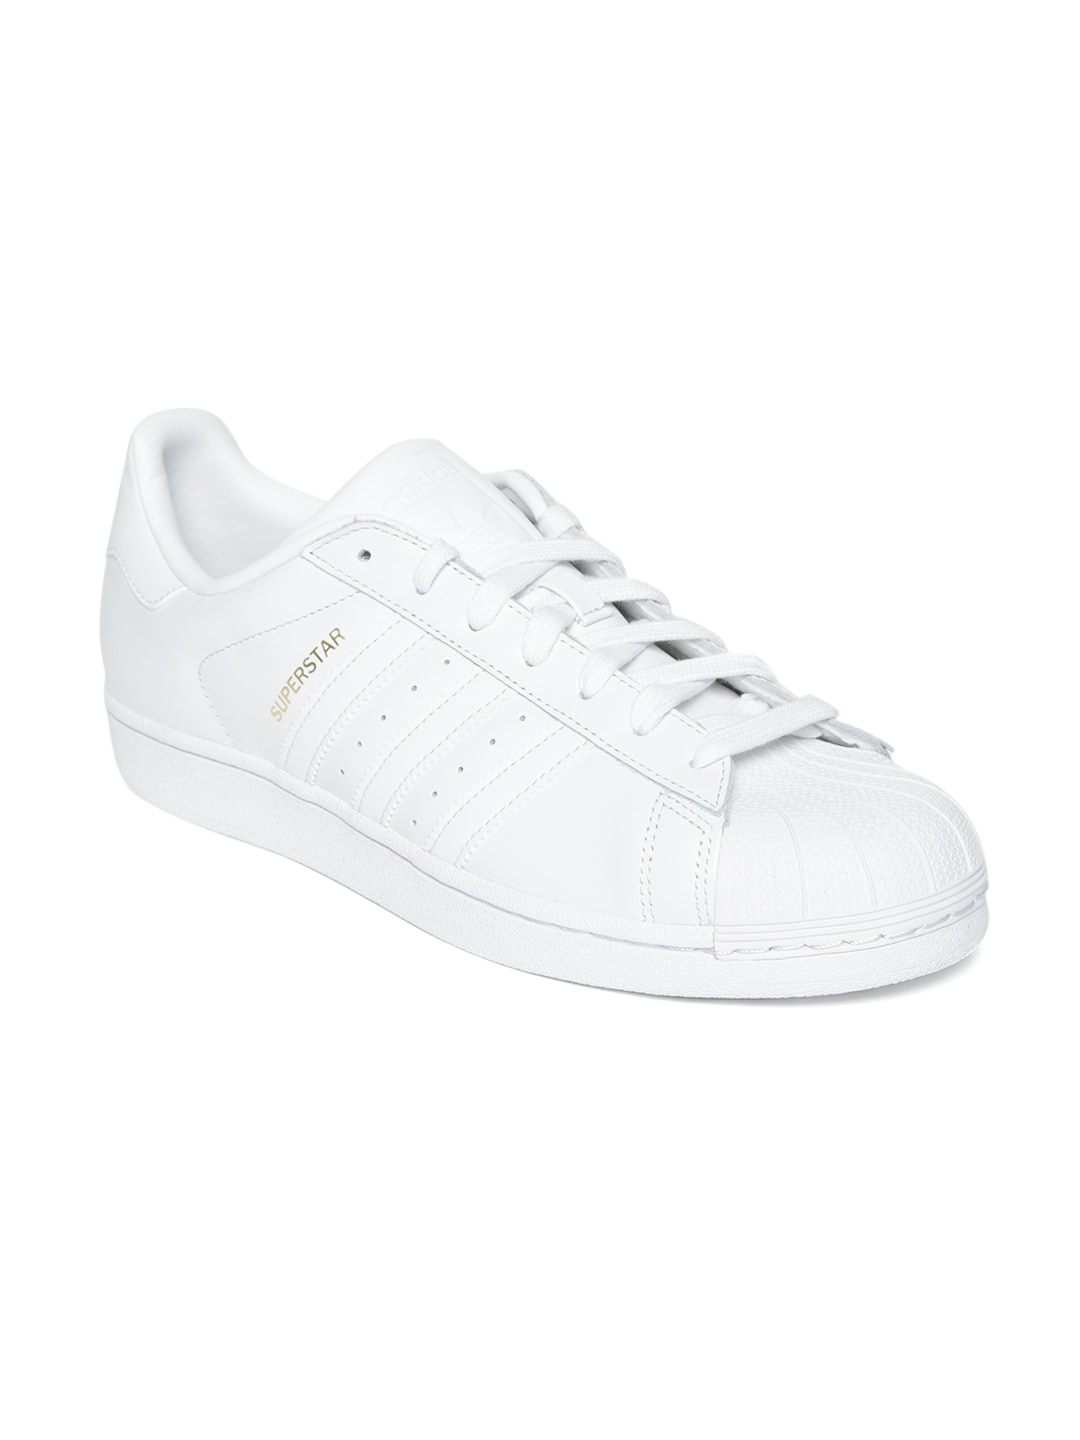 Superstar Adidas Originals Originals Superstar Adidas Buy Shoes 0wN8nPXOk